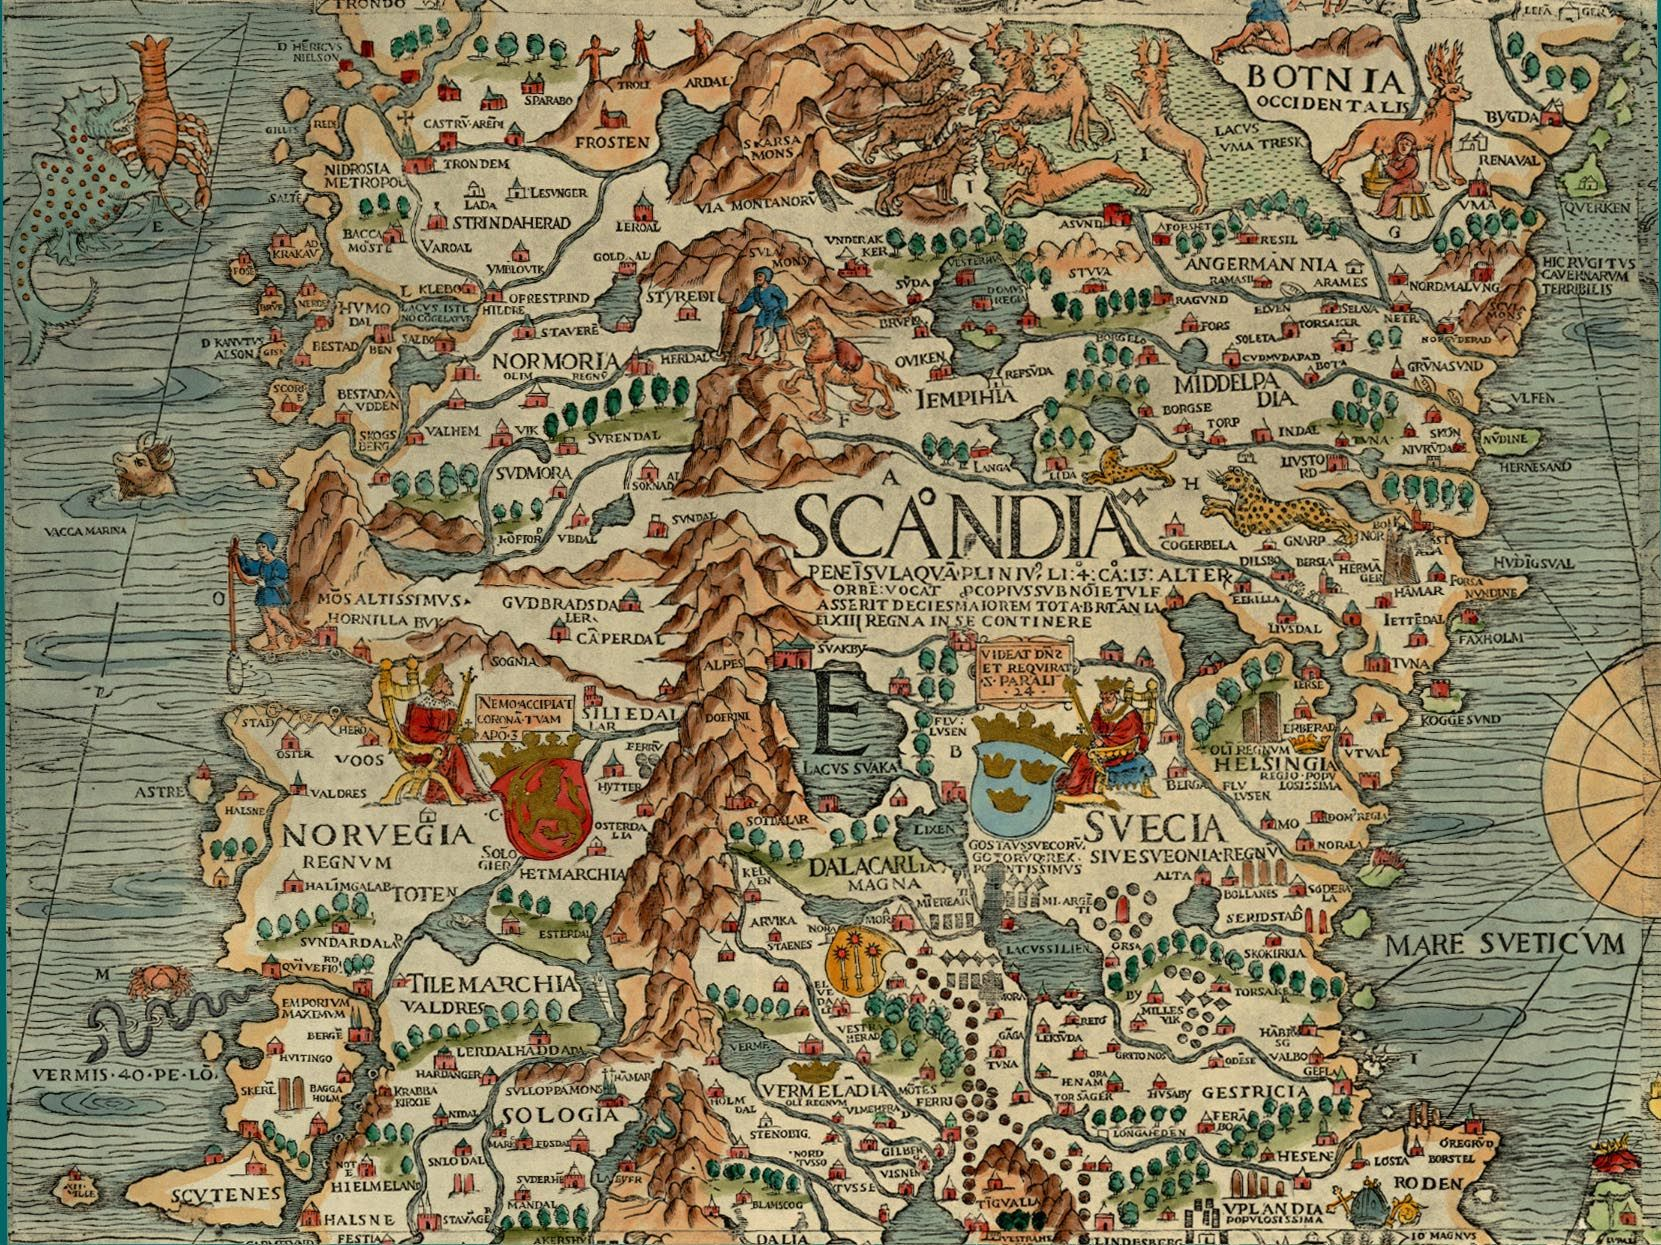 Olaus Magnus Map Of Scandinavia 1539 Section E Norway And Sweden Antique Maps Map Cartography Map